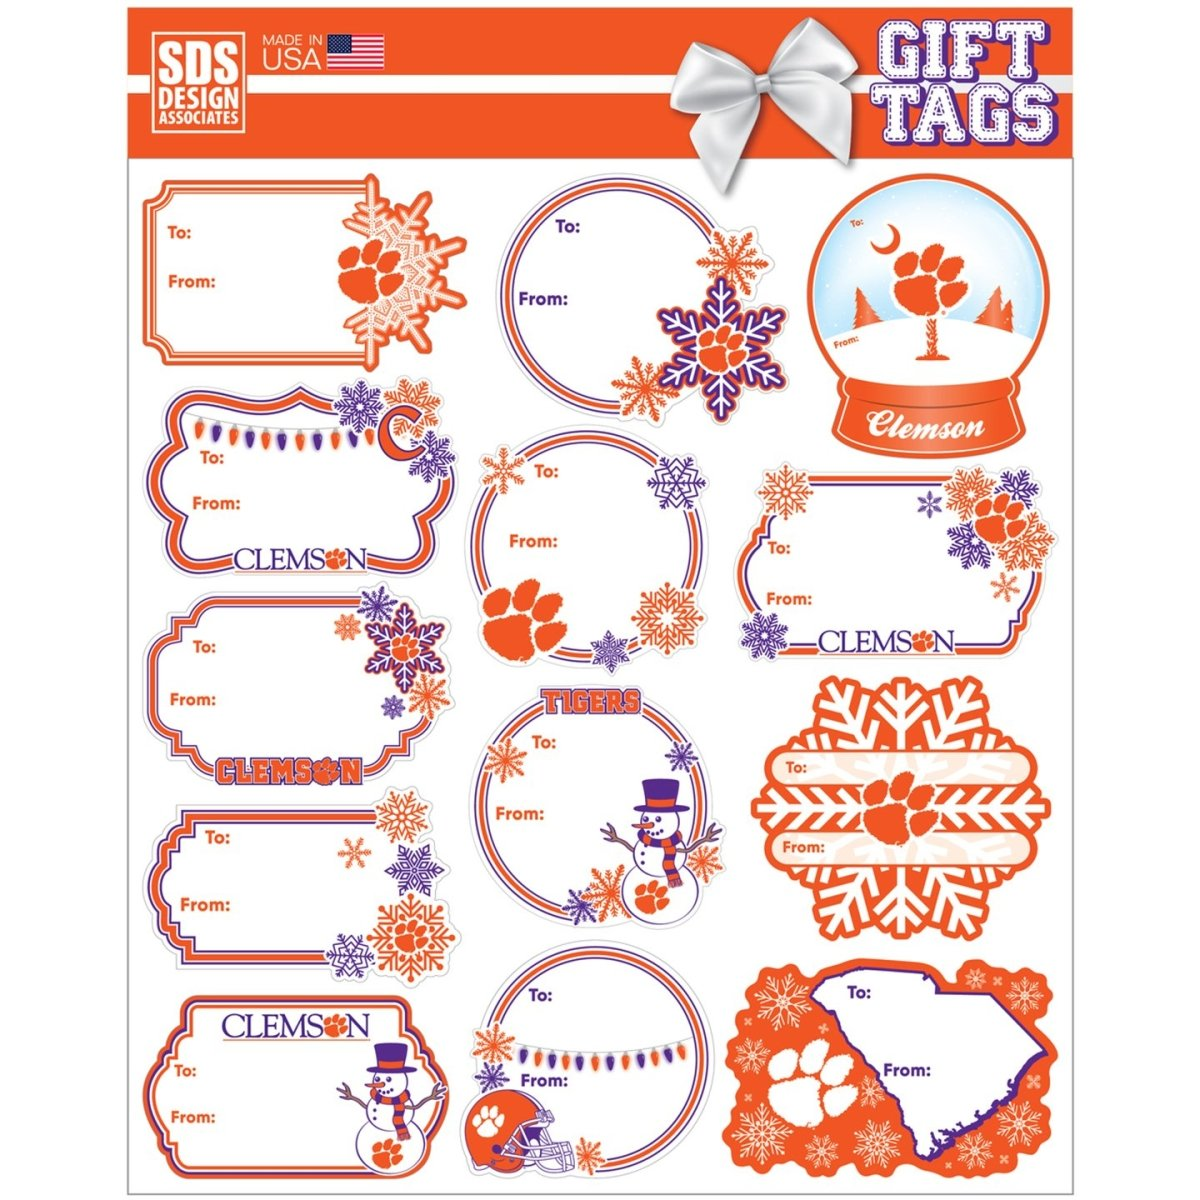 SDS Designs Clemson Gift Tags Sheet - Mr. Knickerbocker